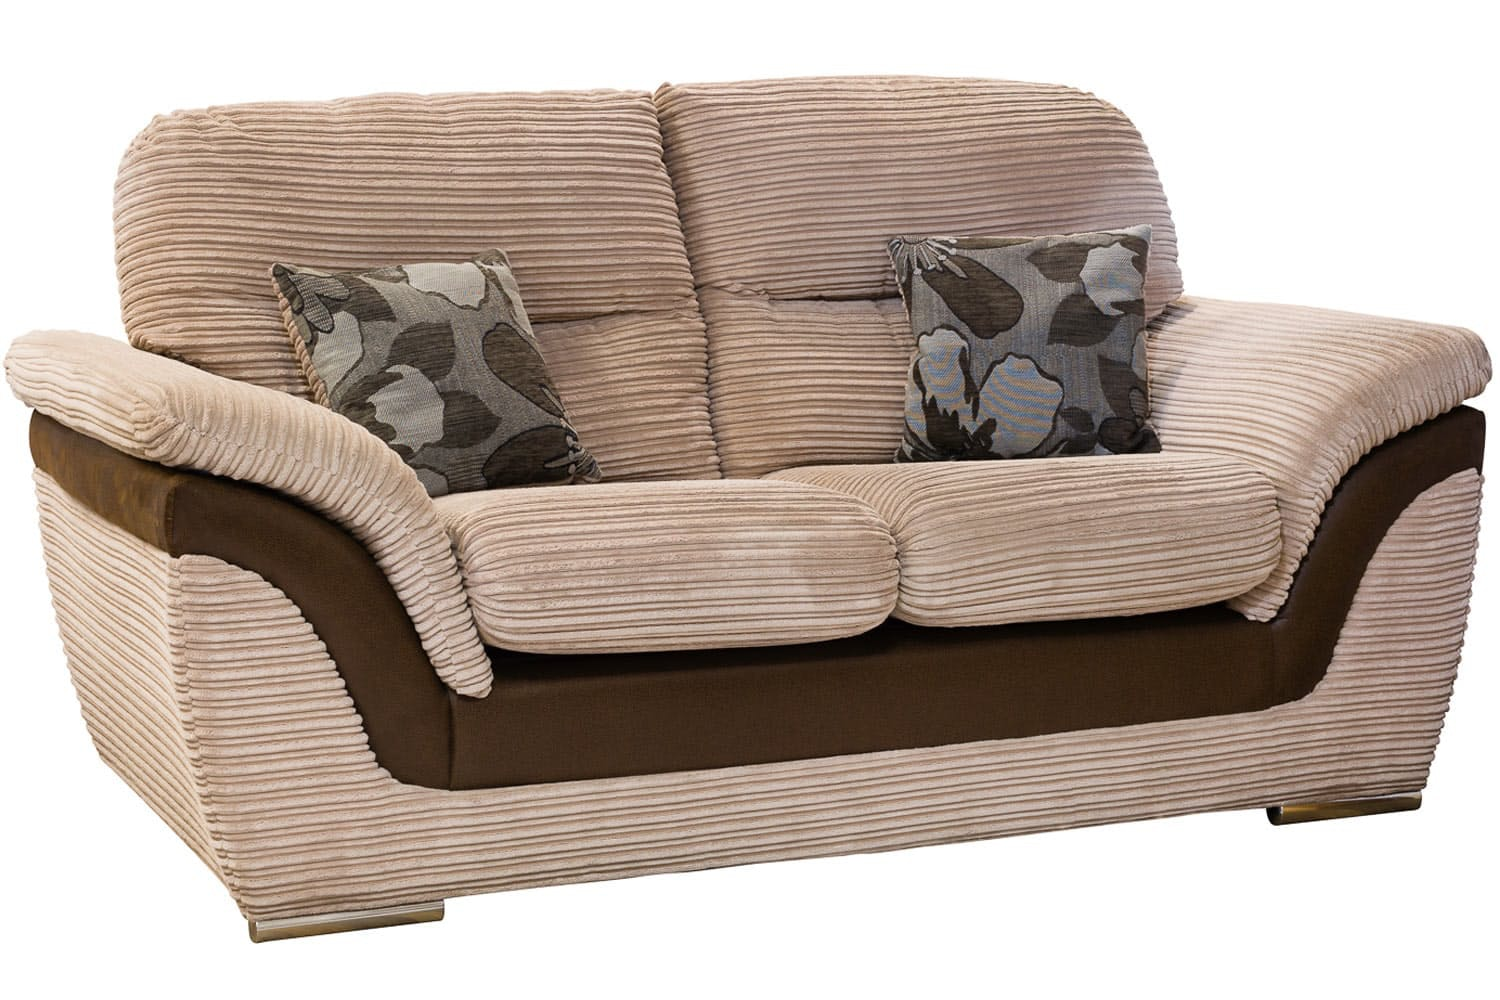 Pippa 2 Seater Sofa